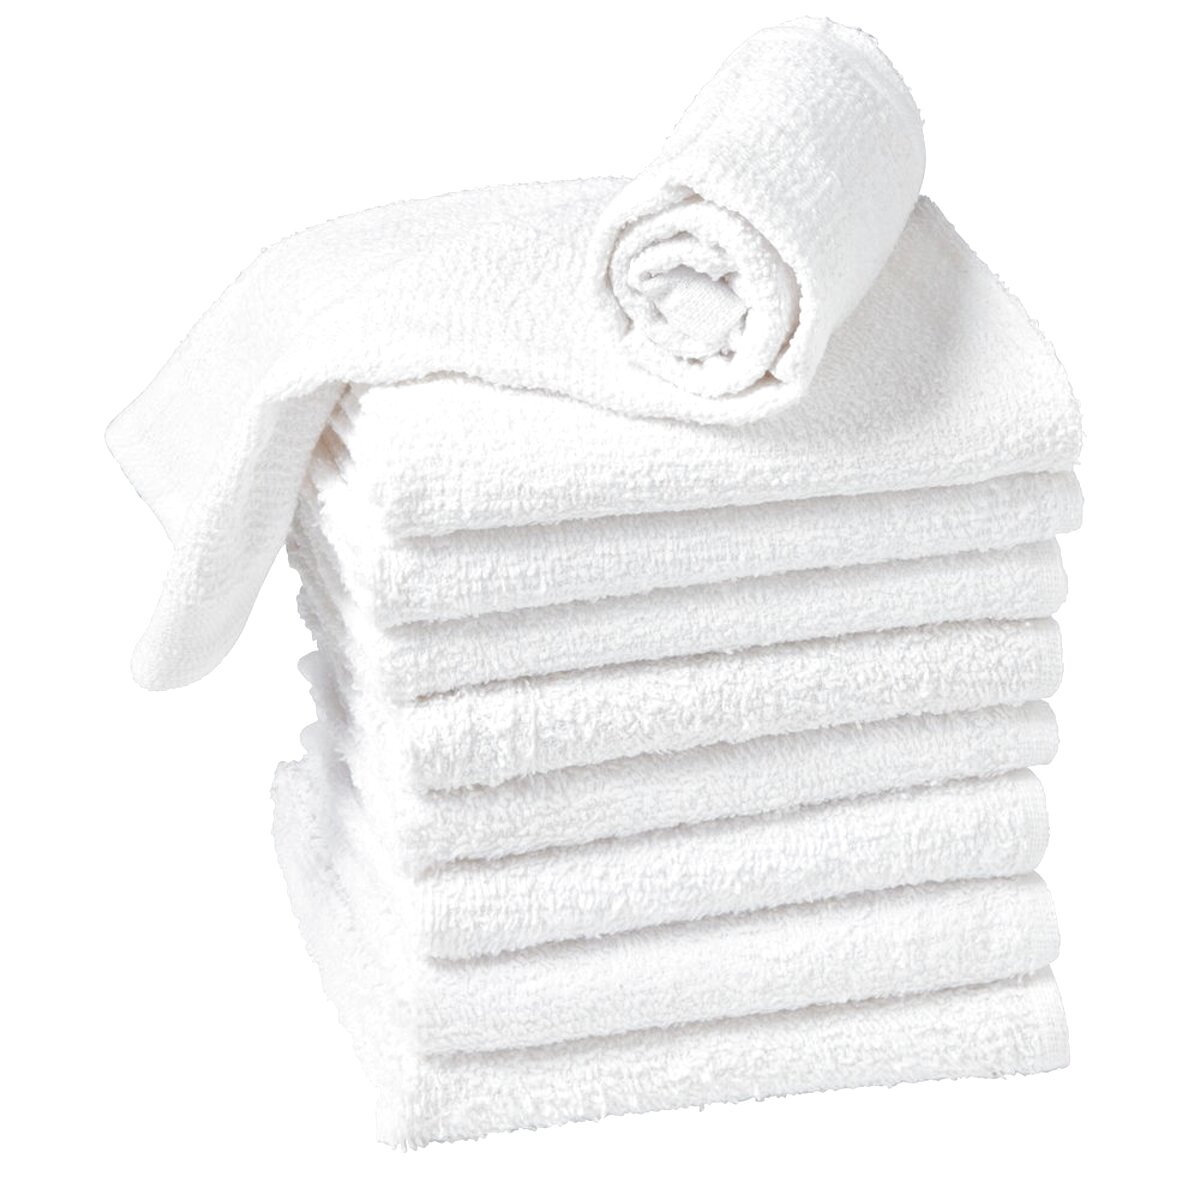 Pack of 12 salon towels Black hand towels 50x85cm aztex Hairdressing Towels